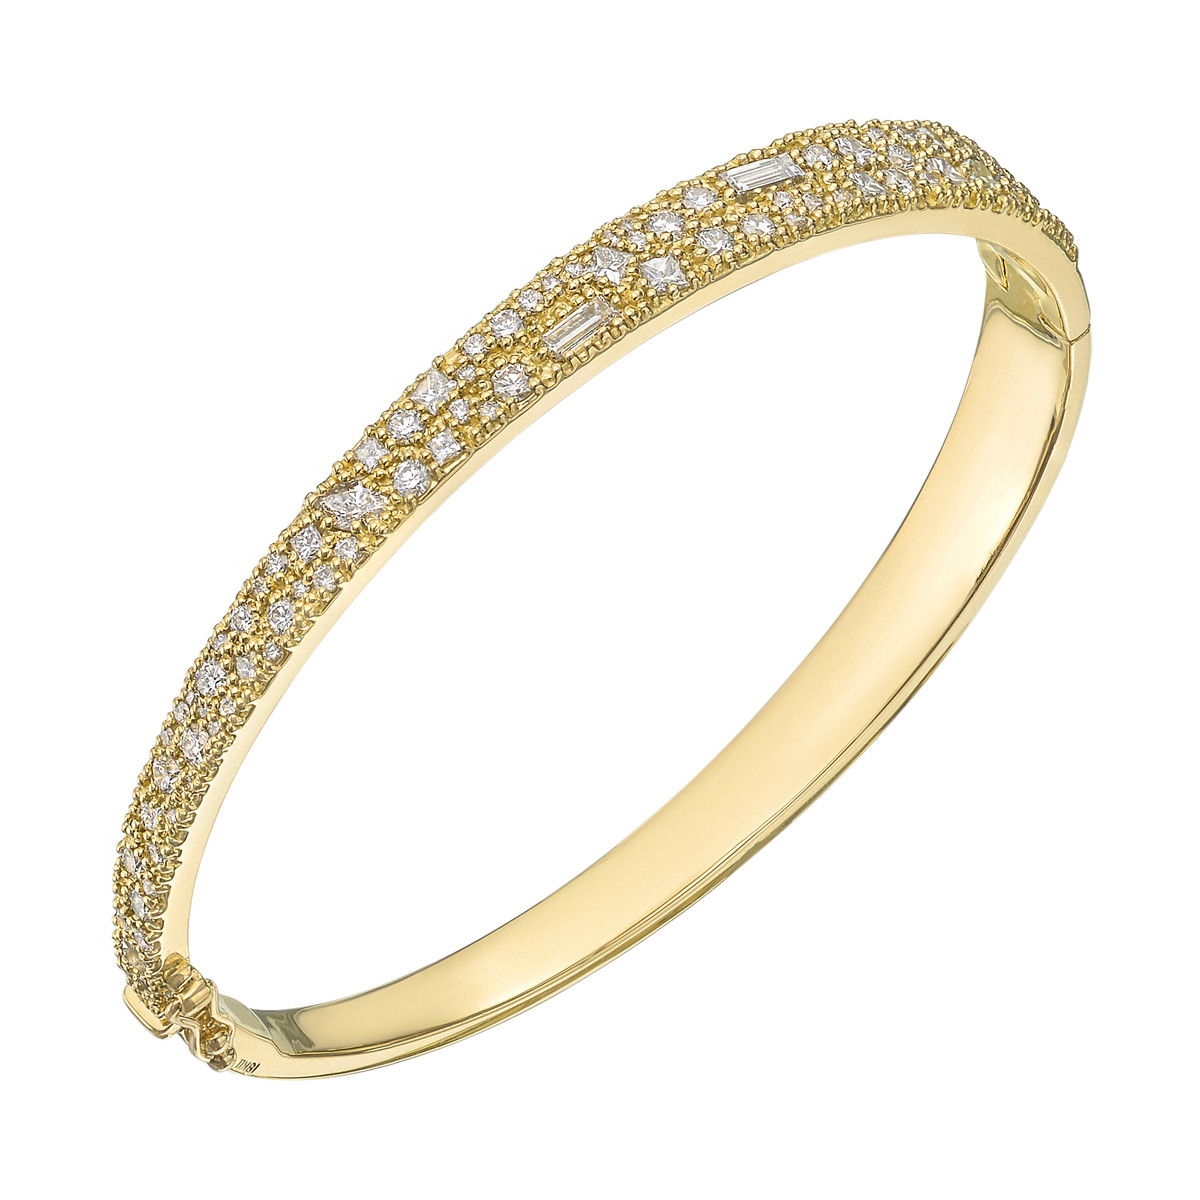 18k Yellow Gold & Mixed-Cut Diamond Bangle